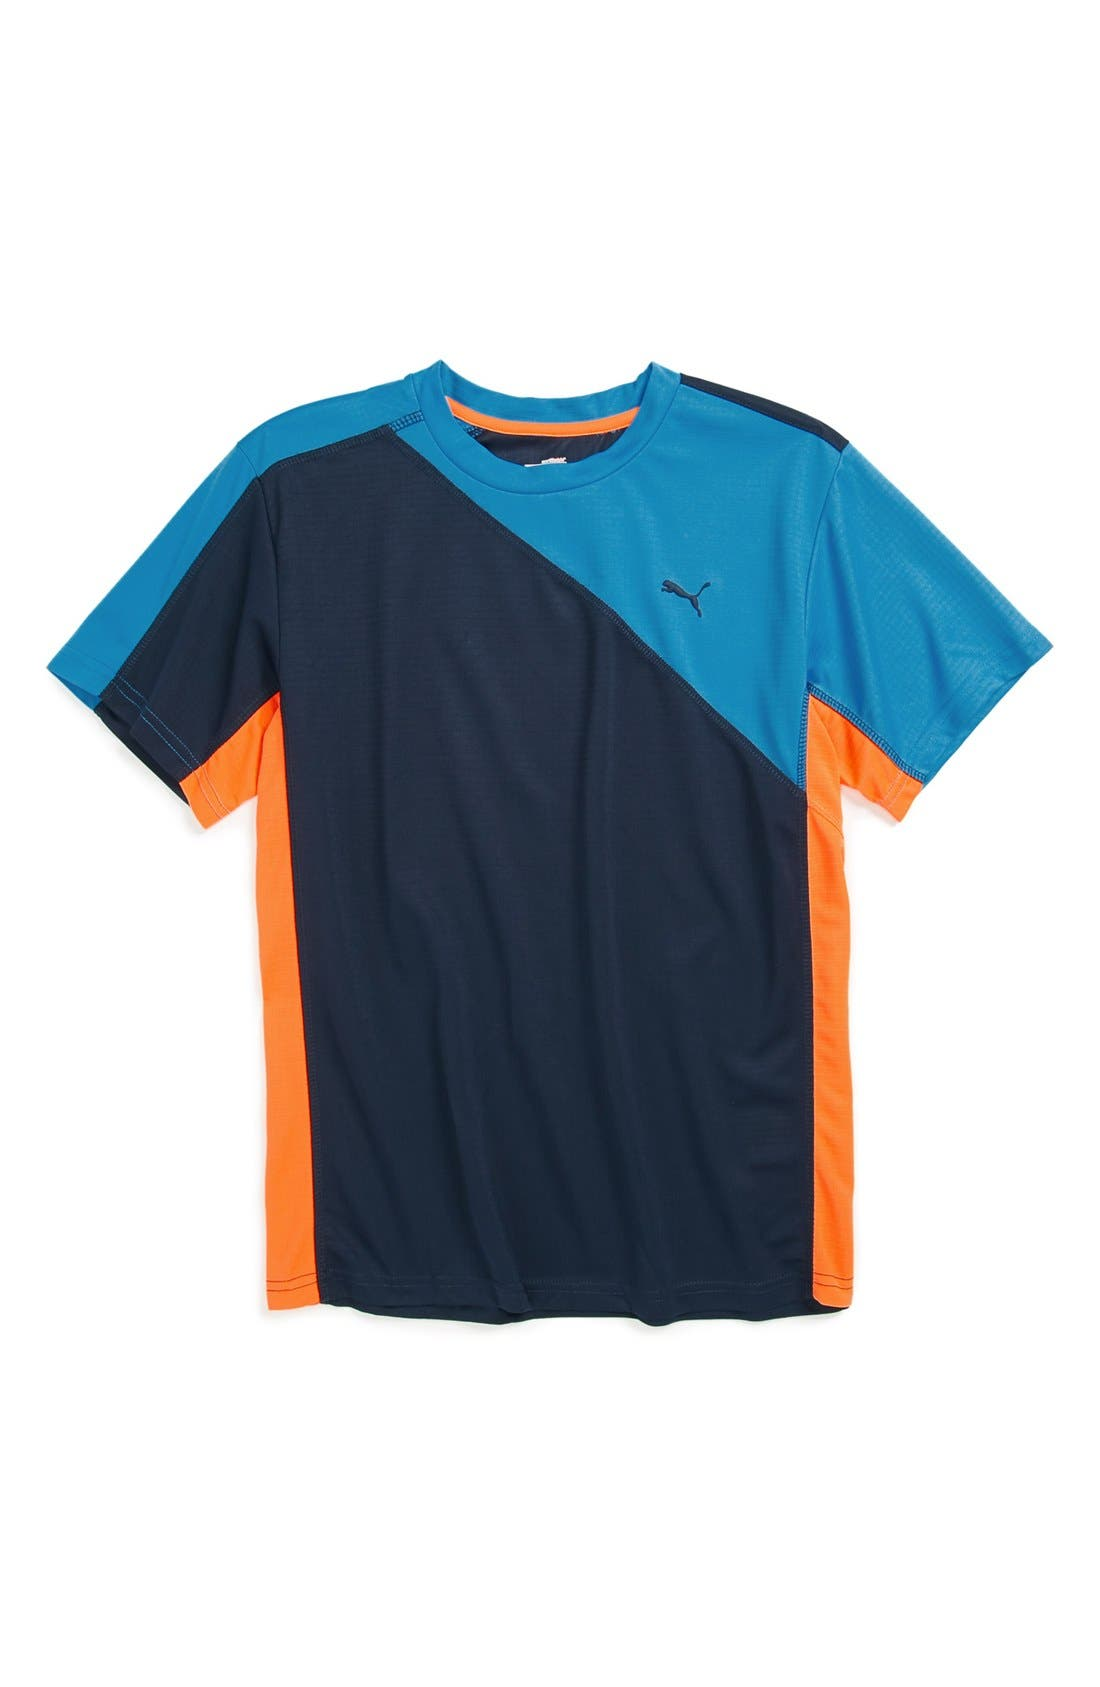 Main Image - PUMA 'Trio' T-Shirt (Big Boys)